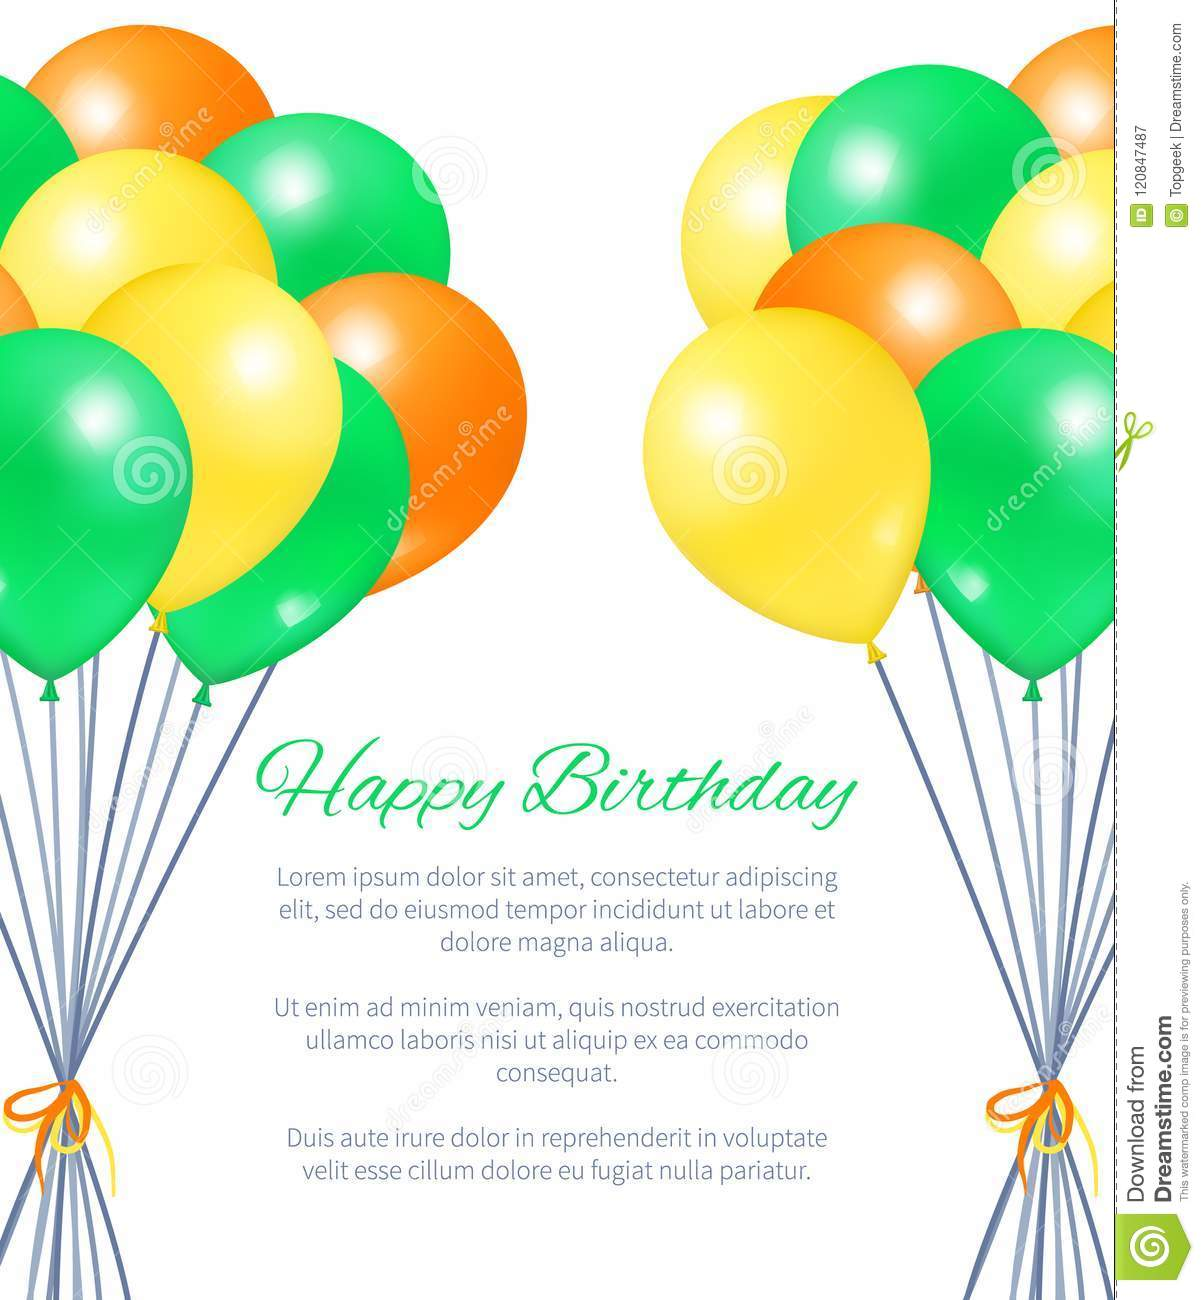 Happy Birthday Postcard Balloons Bundles For Party Stock Vector